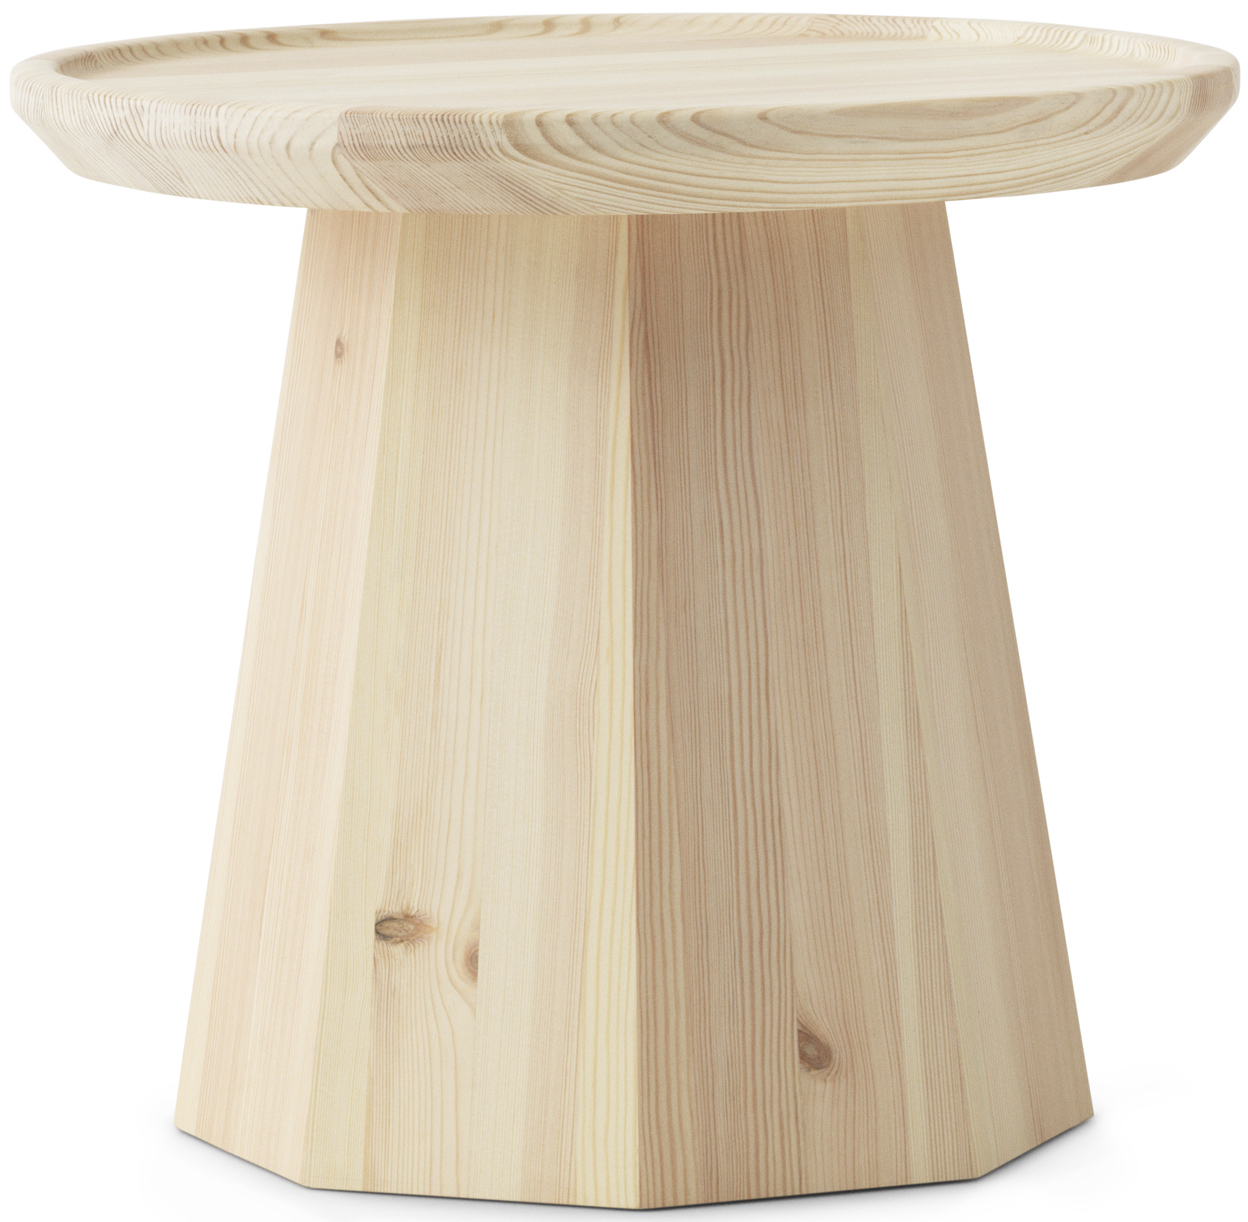 64 x h445 cm - Table Ovale Scandinave2543